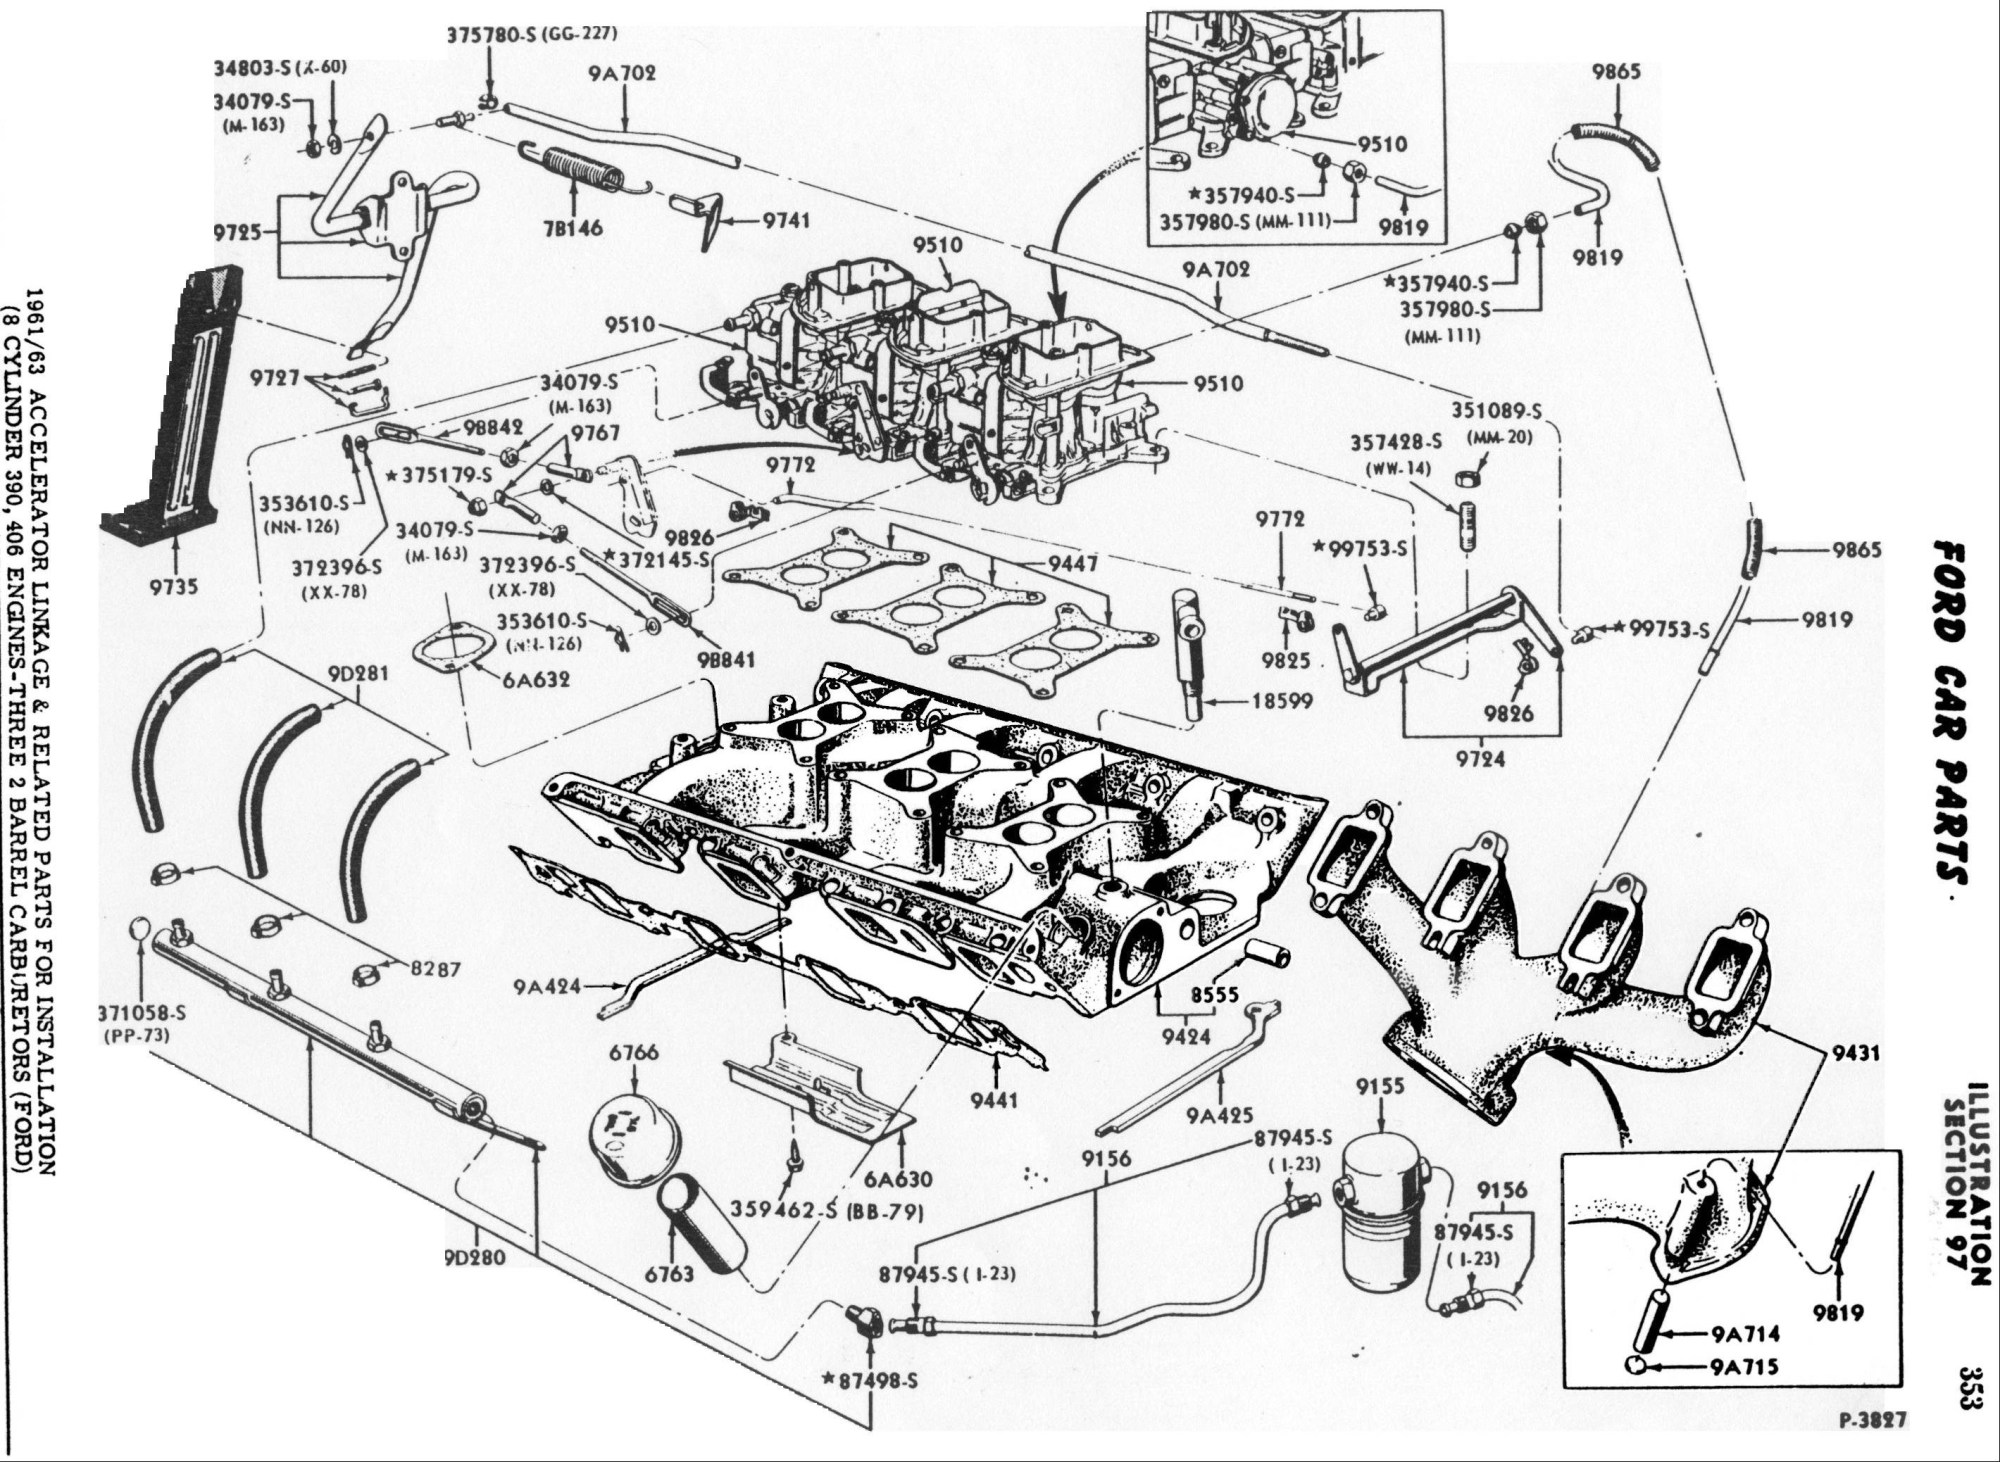 hight resolution of 460 engine diagram wiring library 1996 460 ford engine car engine diagram with labeled 460 ford